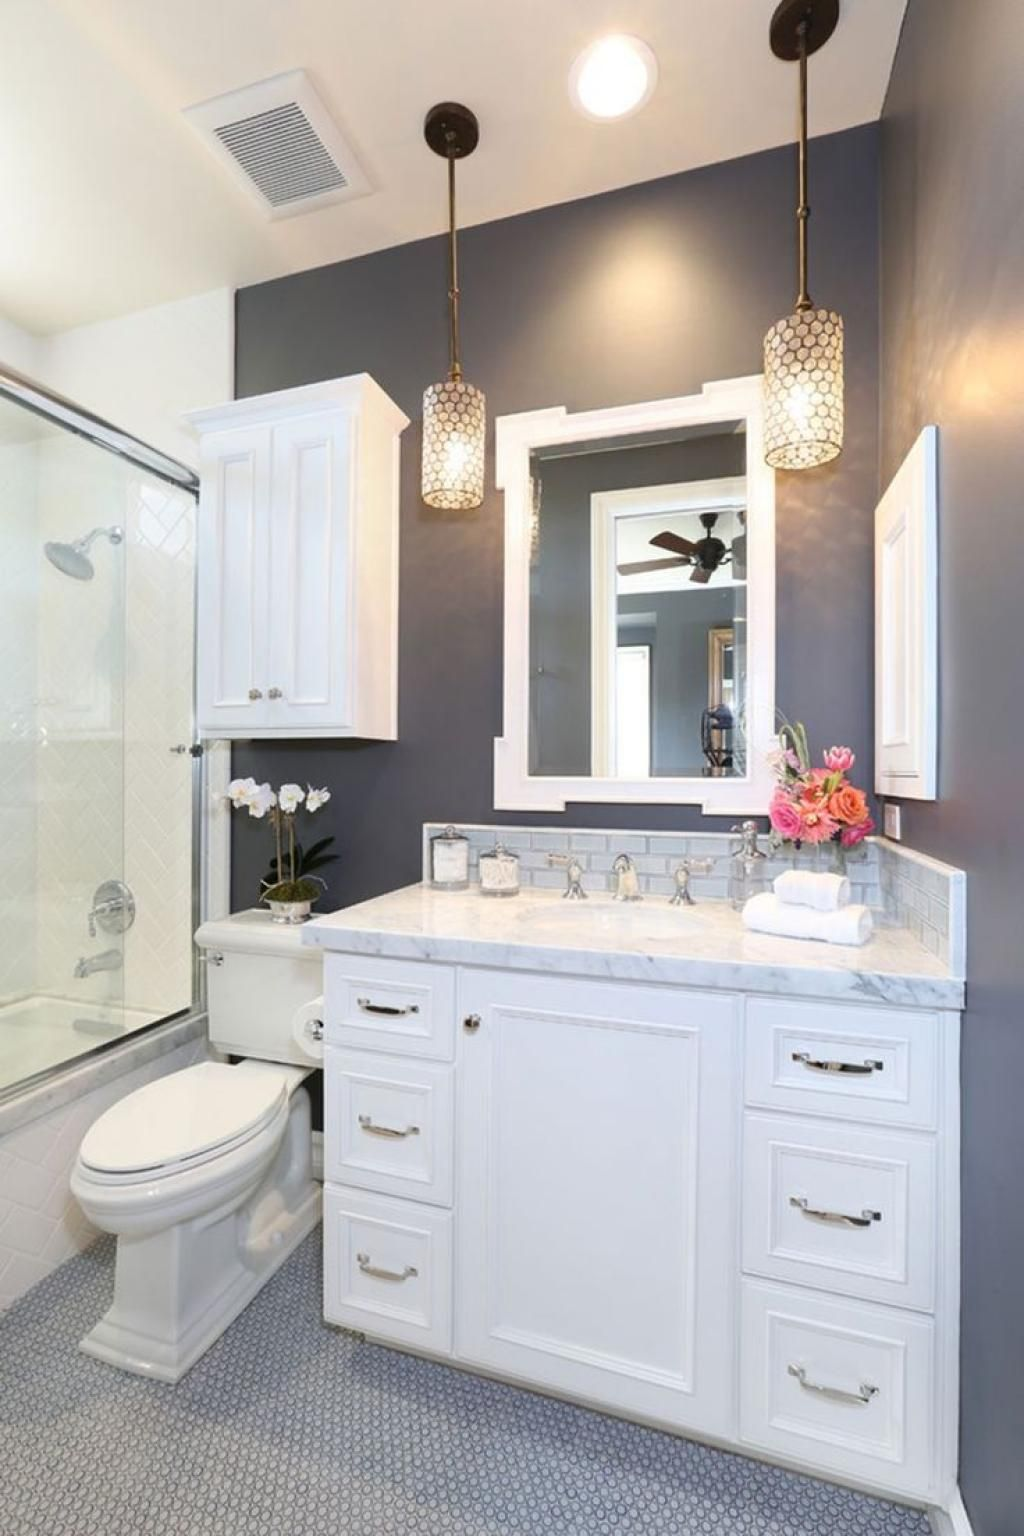 3 Easy Steps To Remodelling Your Small Bathroom